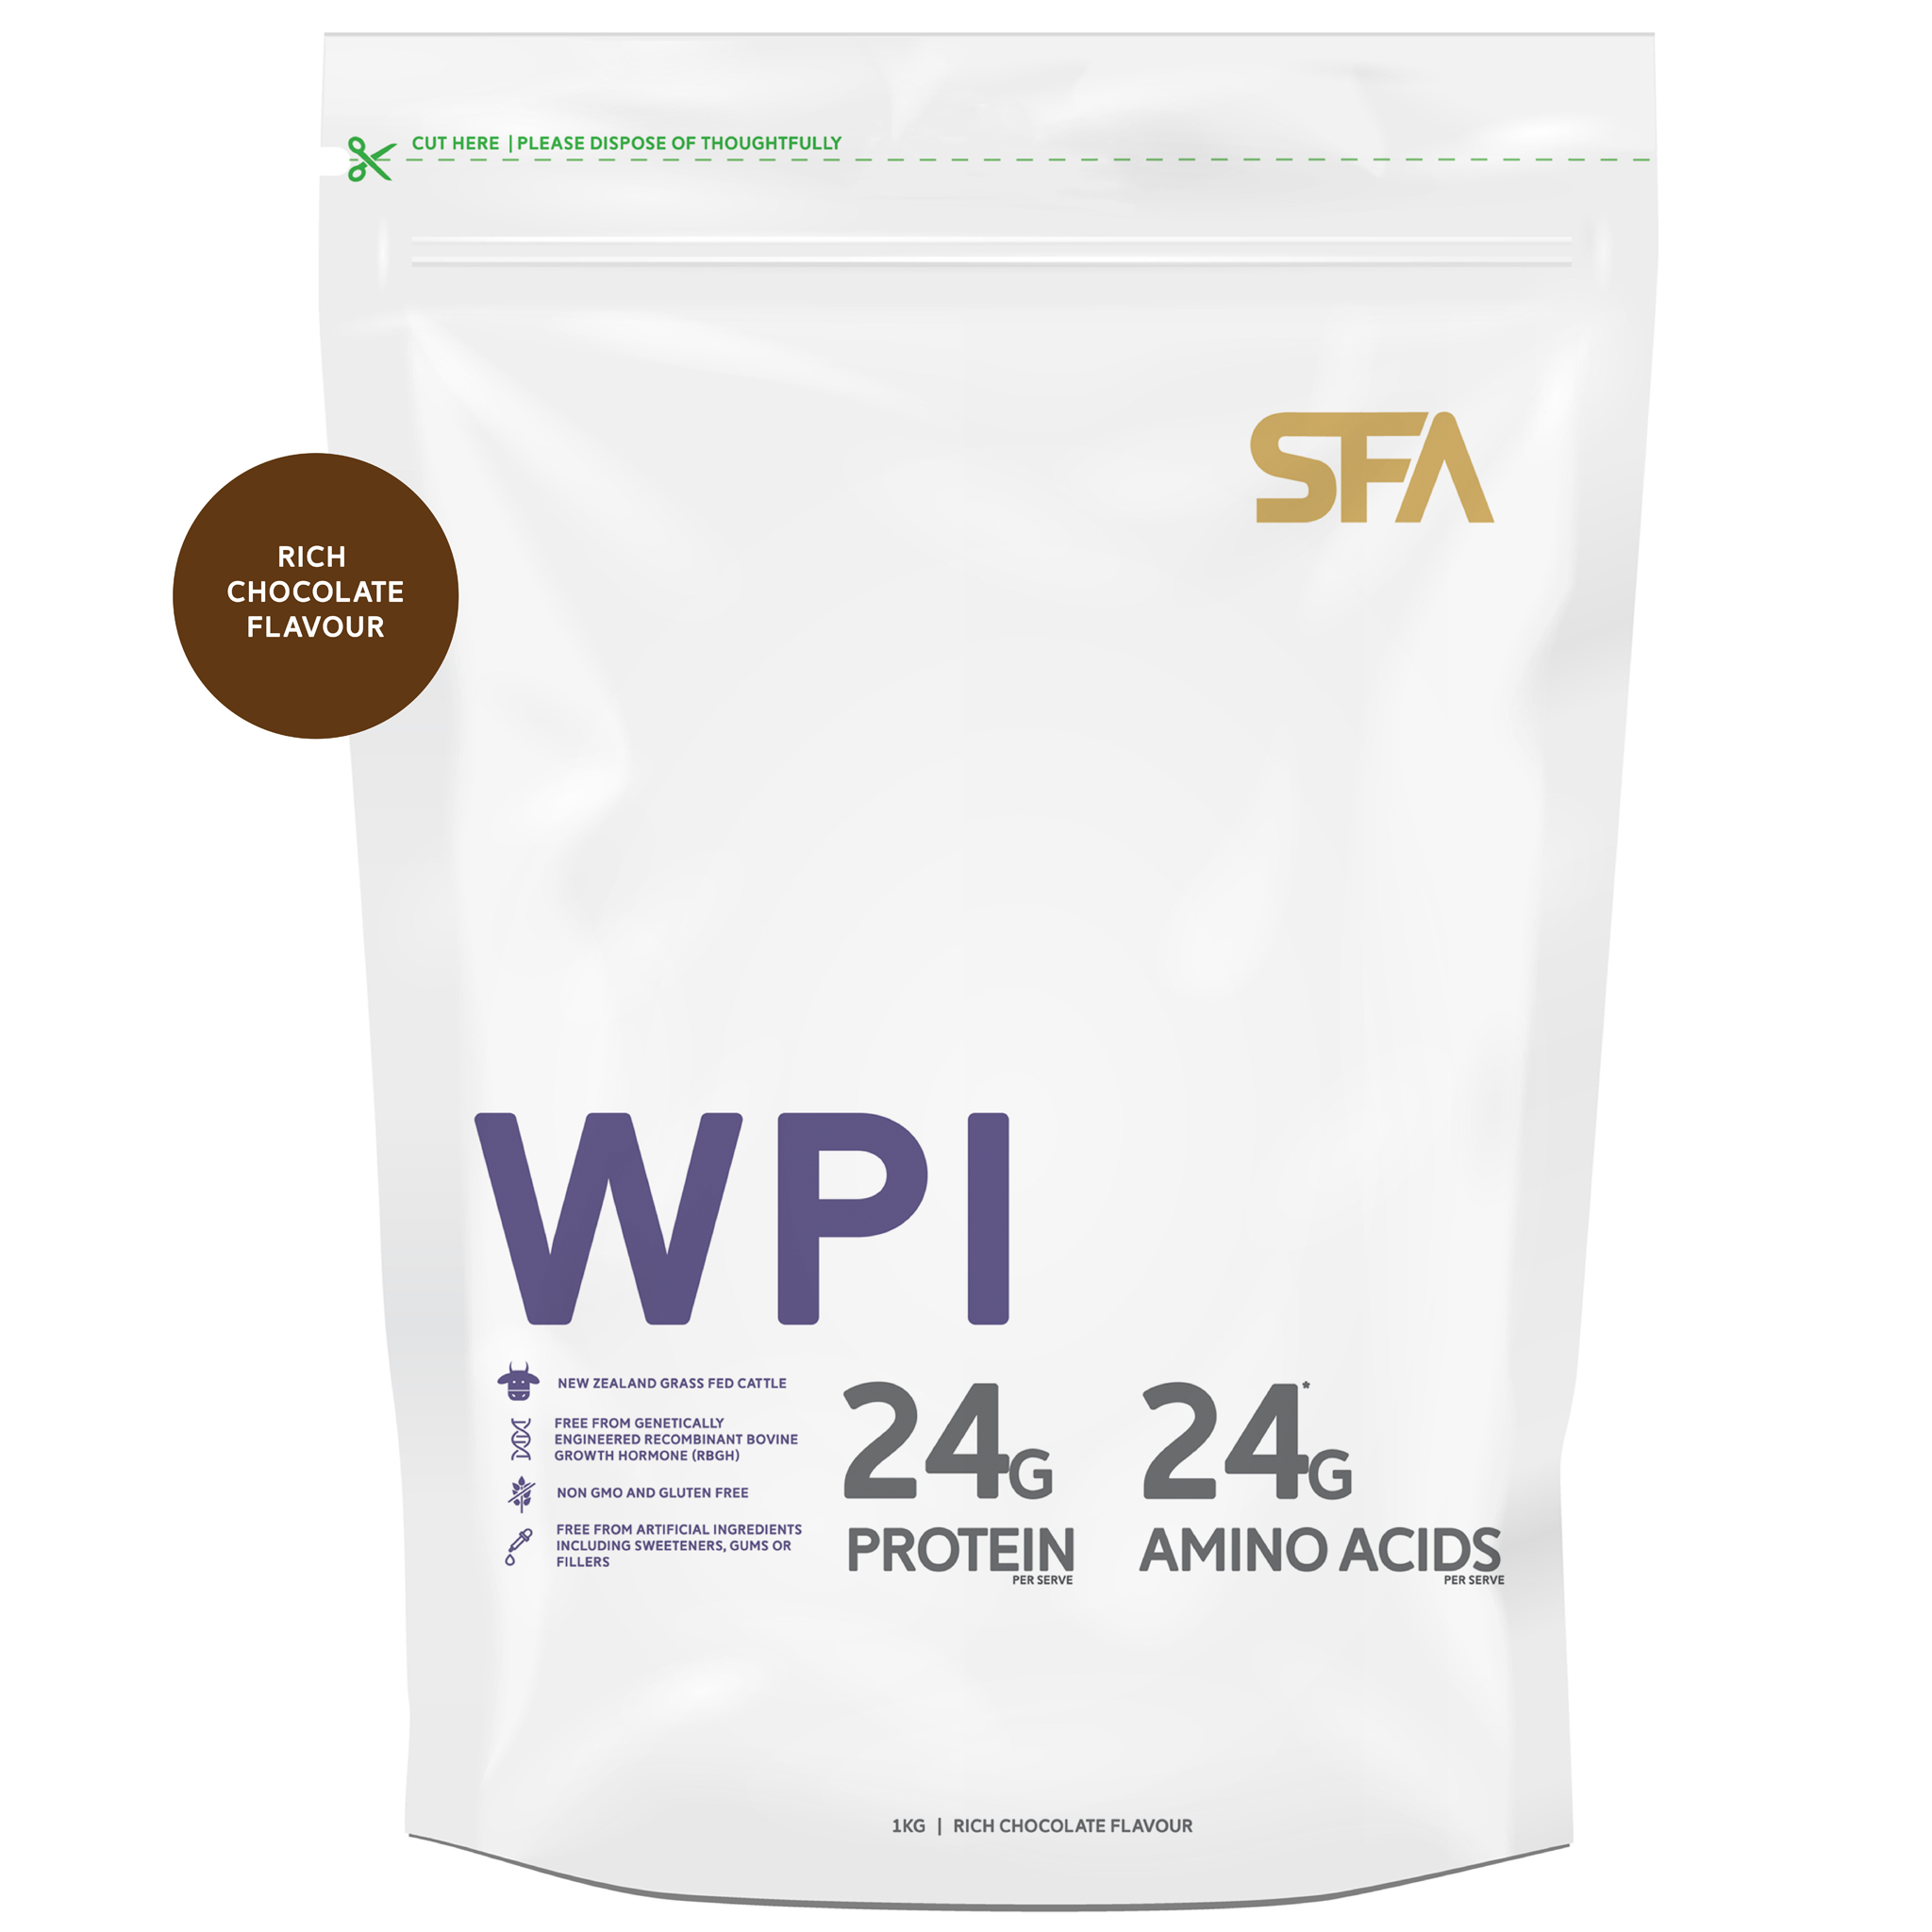 WPI - Whey Protein Isolate Flavours